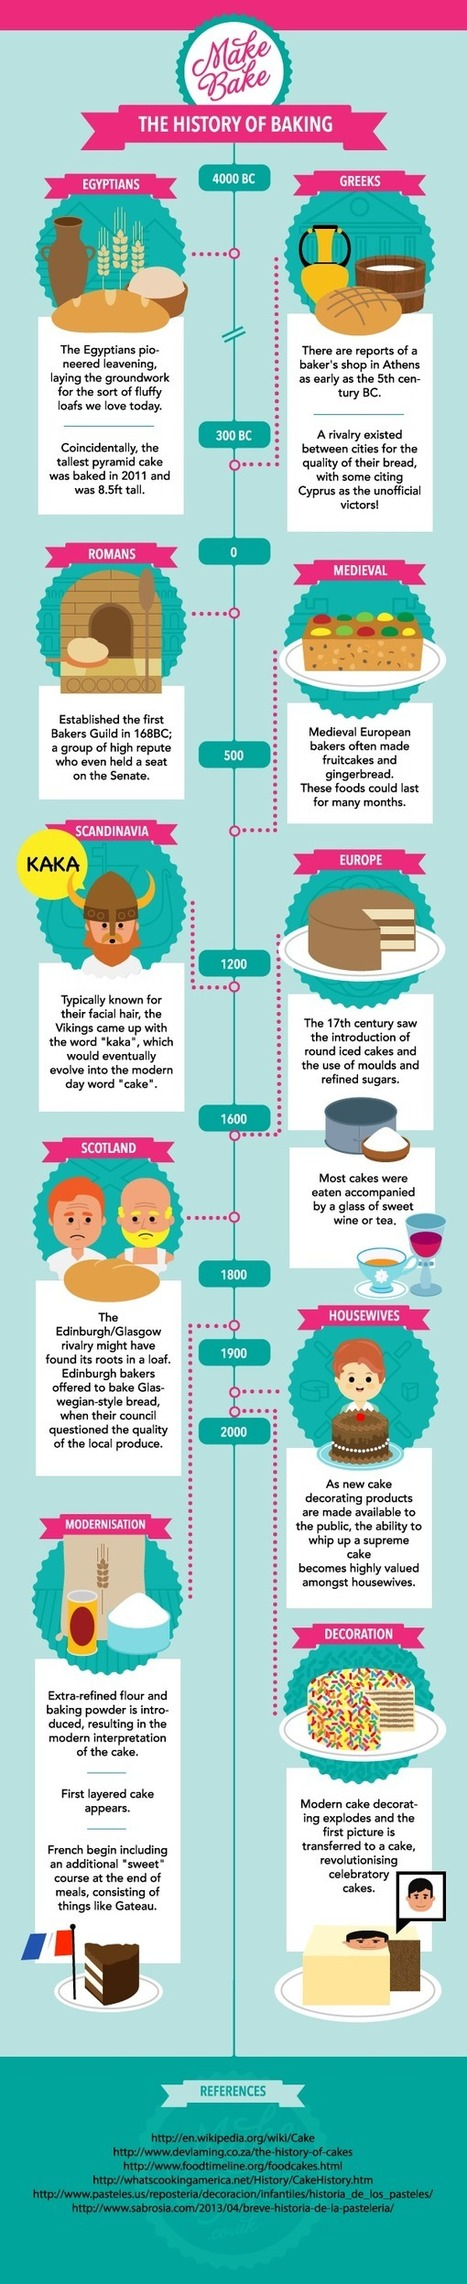 The History of Baking | Baking and Pastry Aspect 1 | Scoop.it